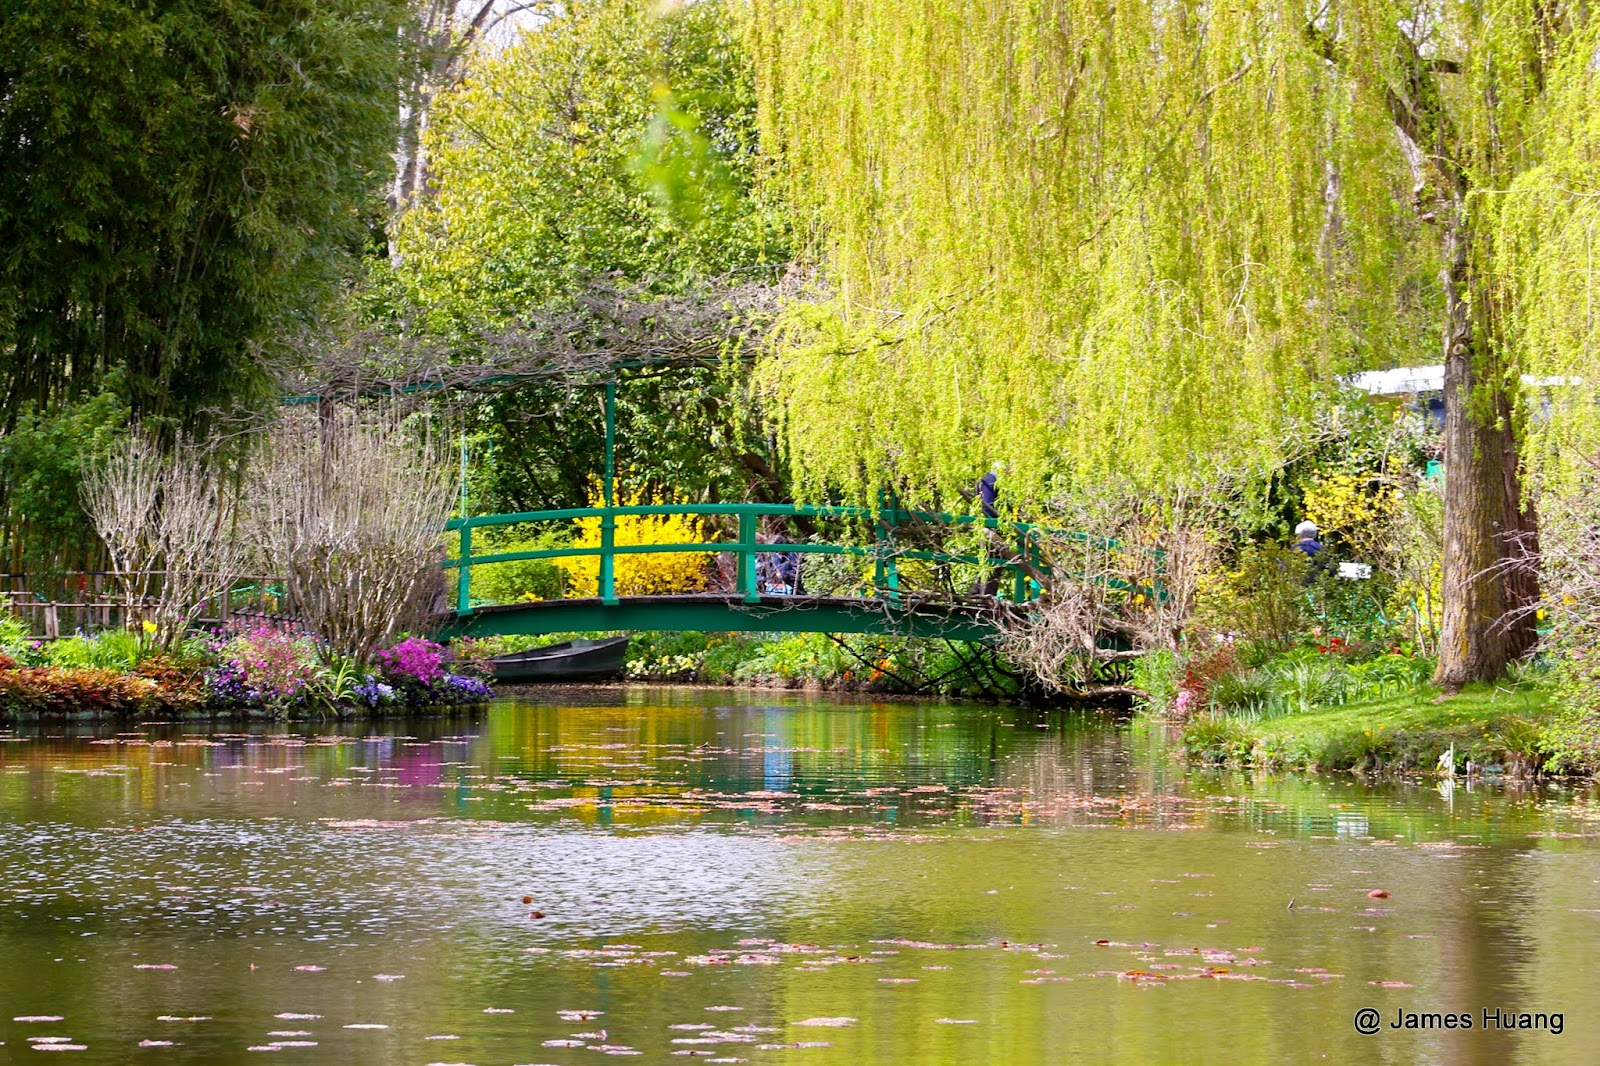 Cloude Monet 39 S House And Gardens Giverny France James